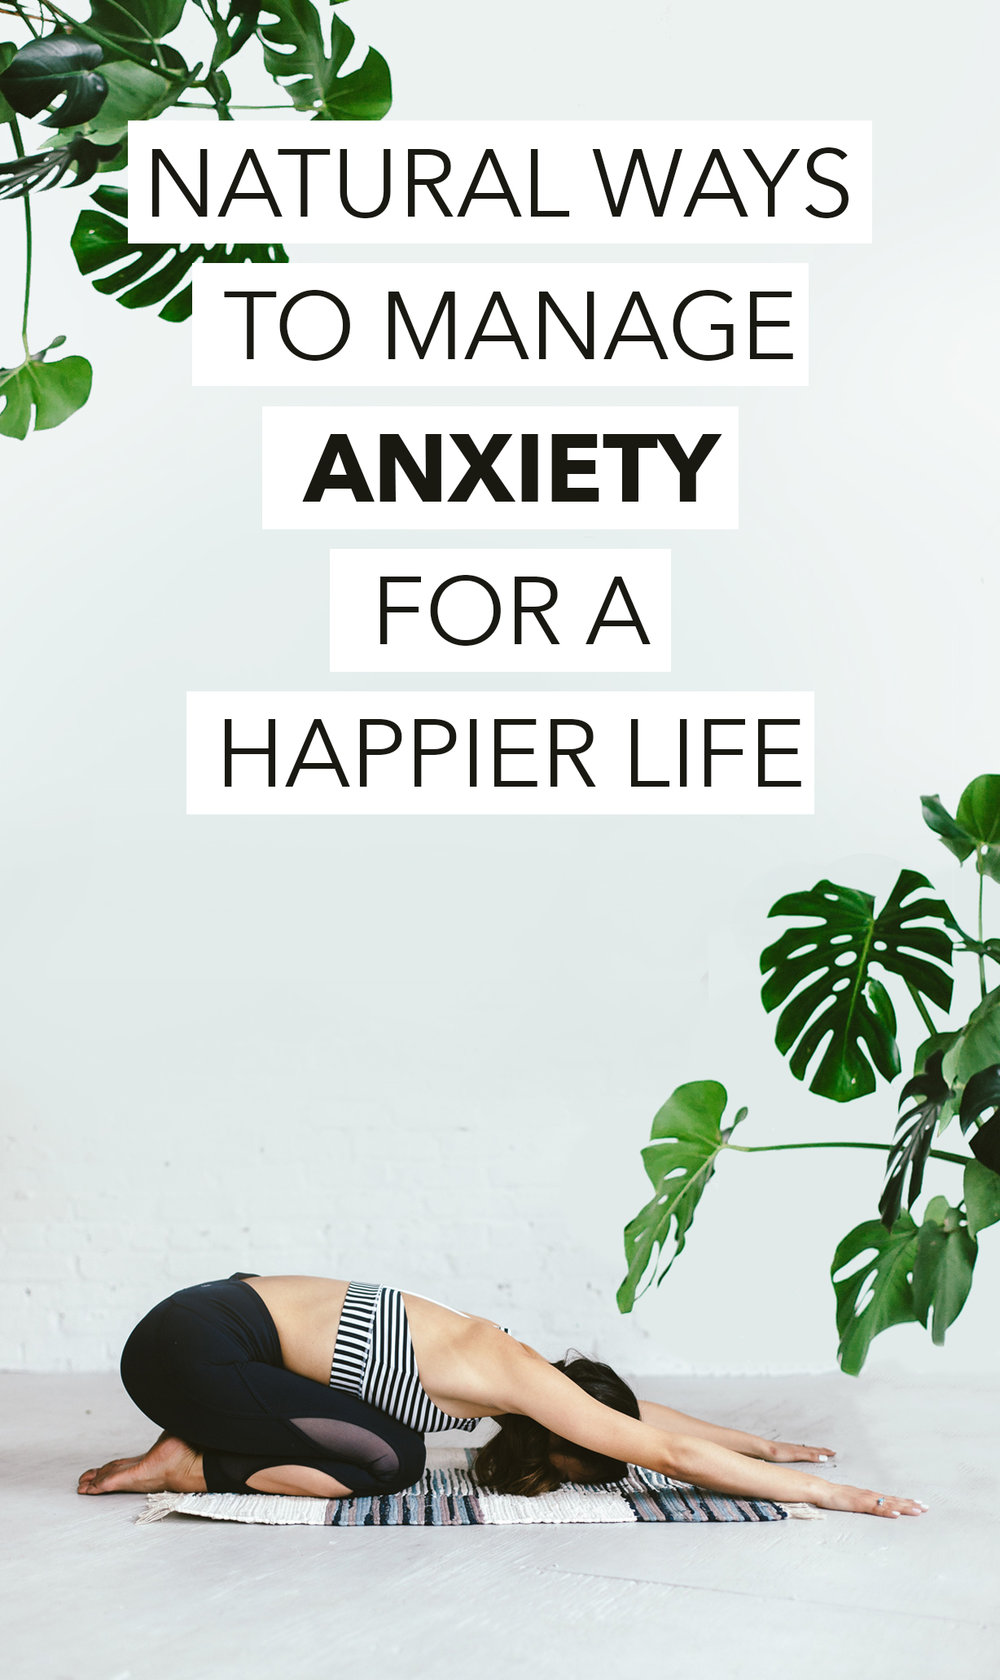 Natural Ways to Manage Anxiety for a Happier Life